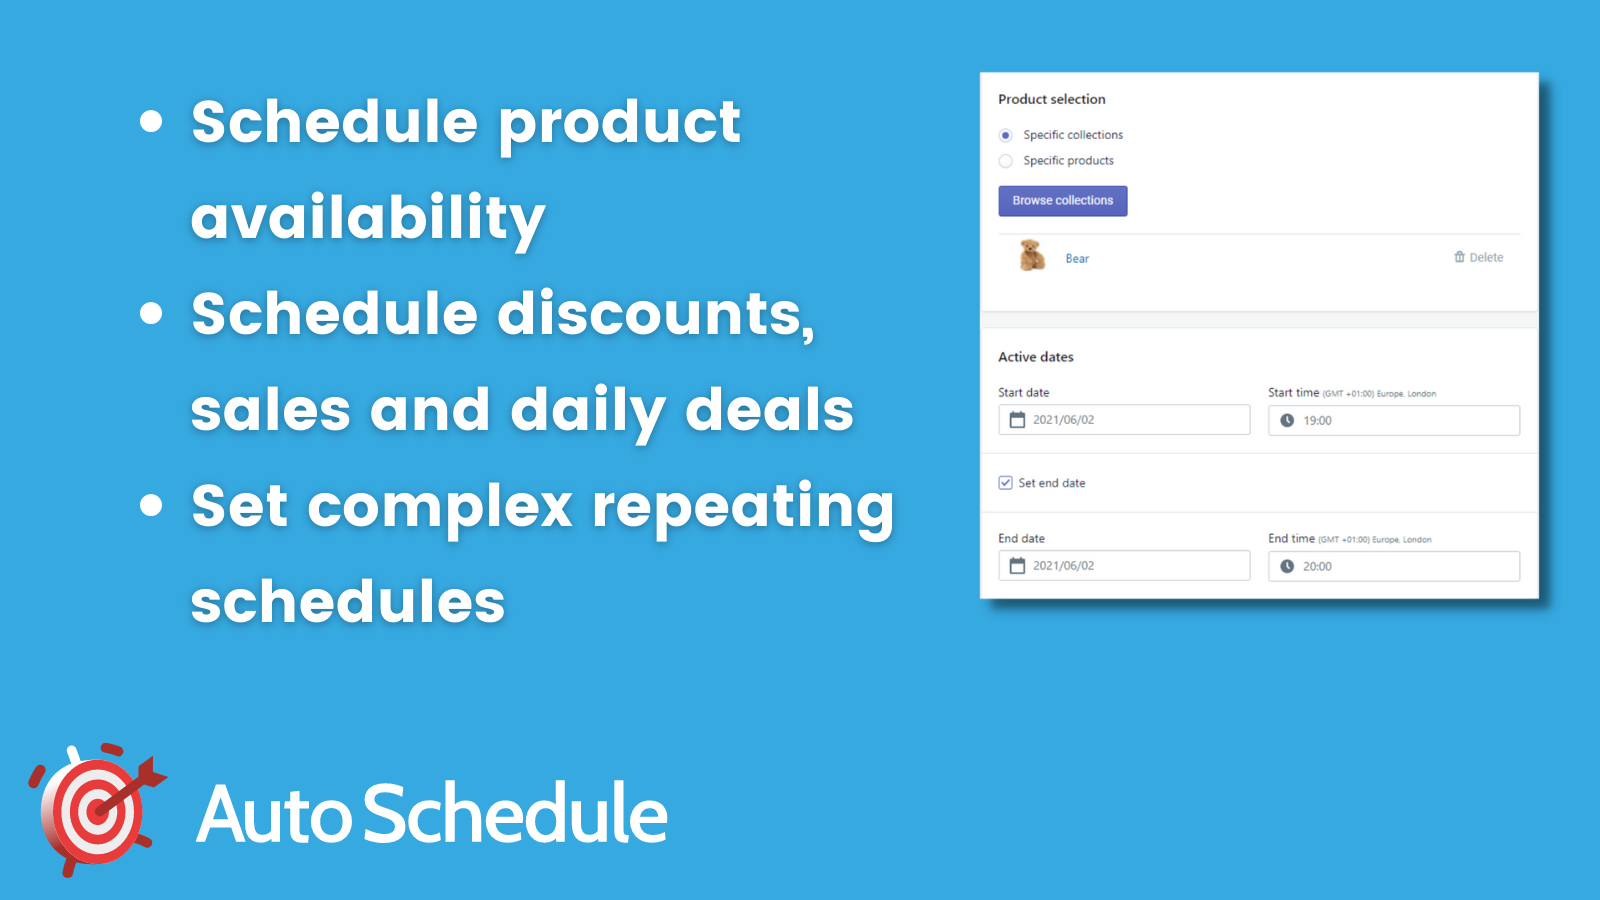 Schedule product availability, discounts and set to repeat